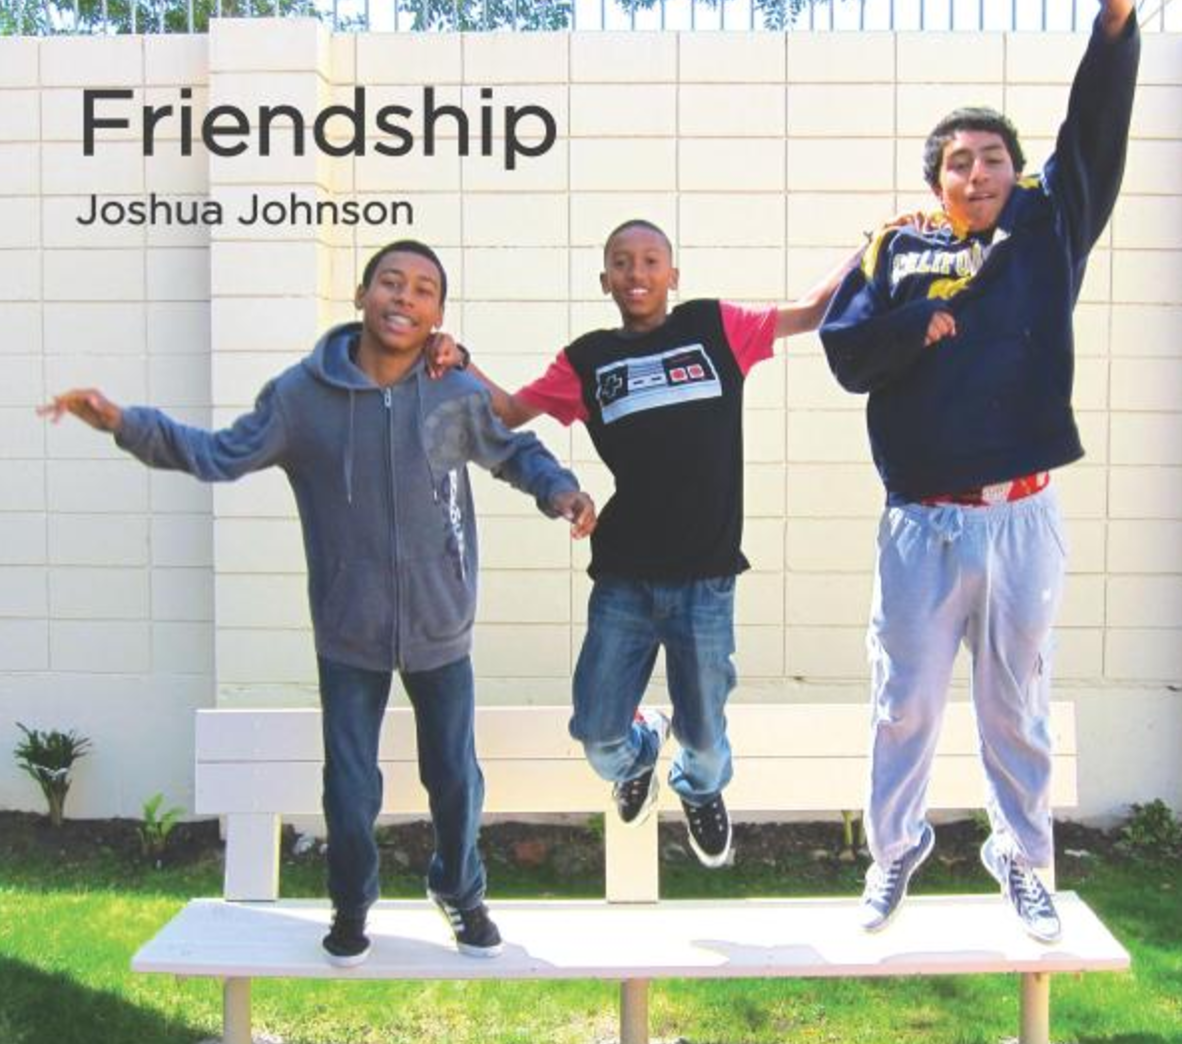 Friendship   Joshua Johnson invites you to learn more about his friend Julius. Learn what Friendship means to them and to you!   Buy this book.